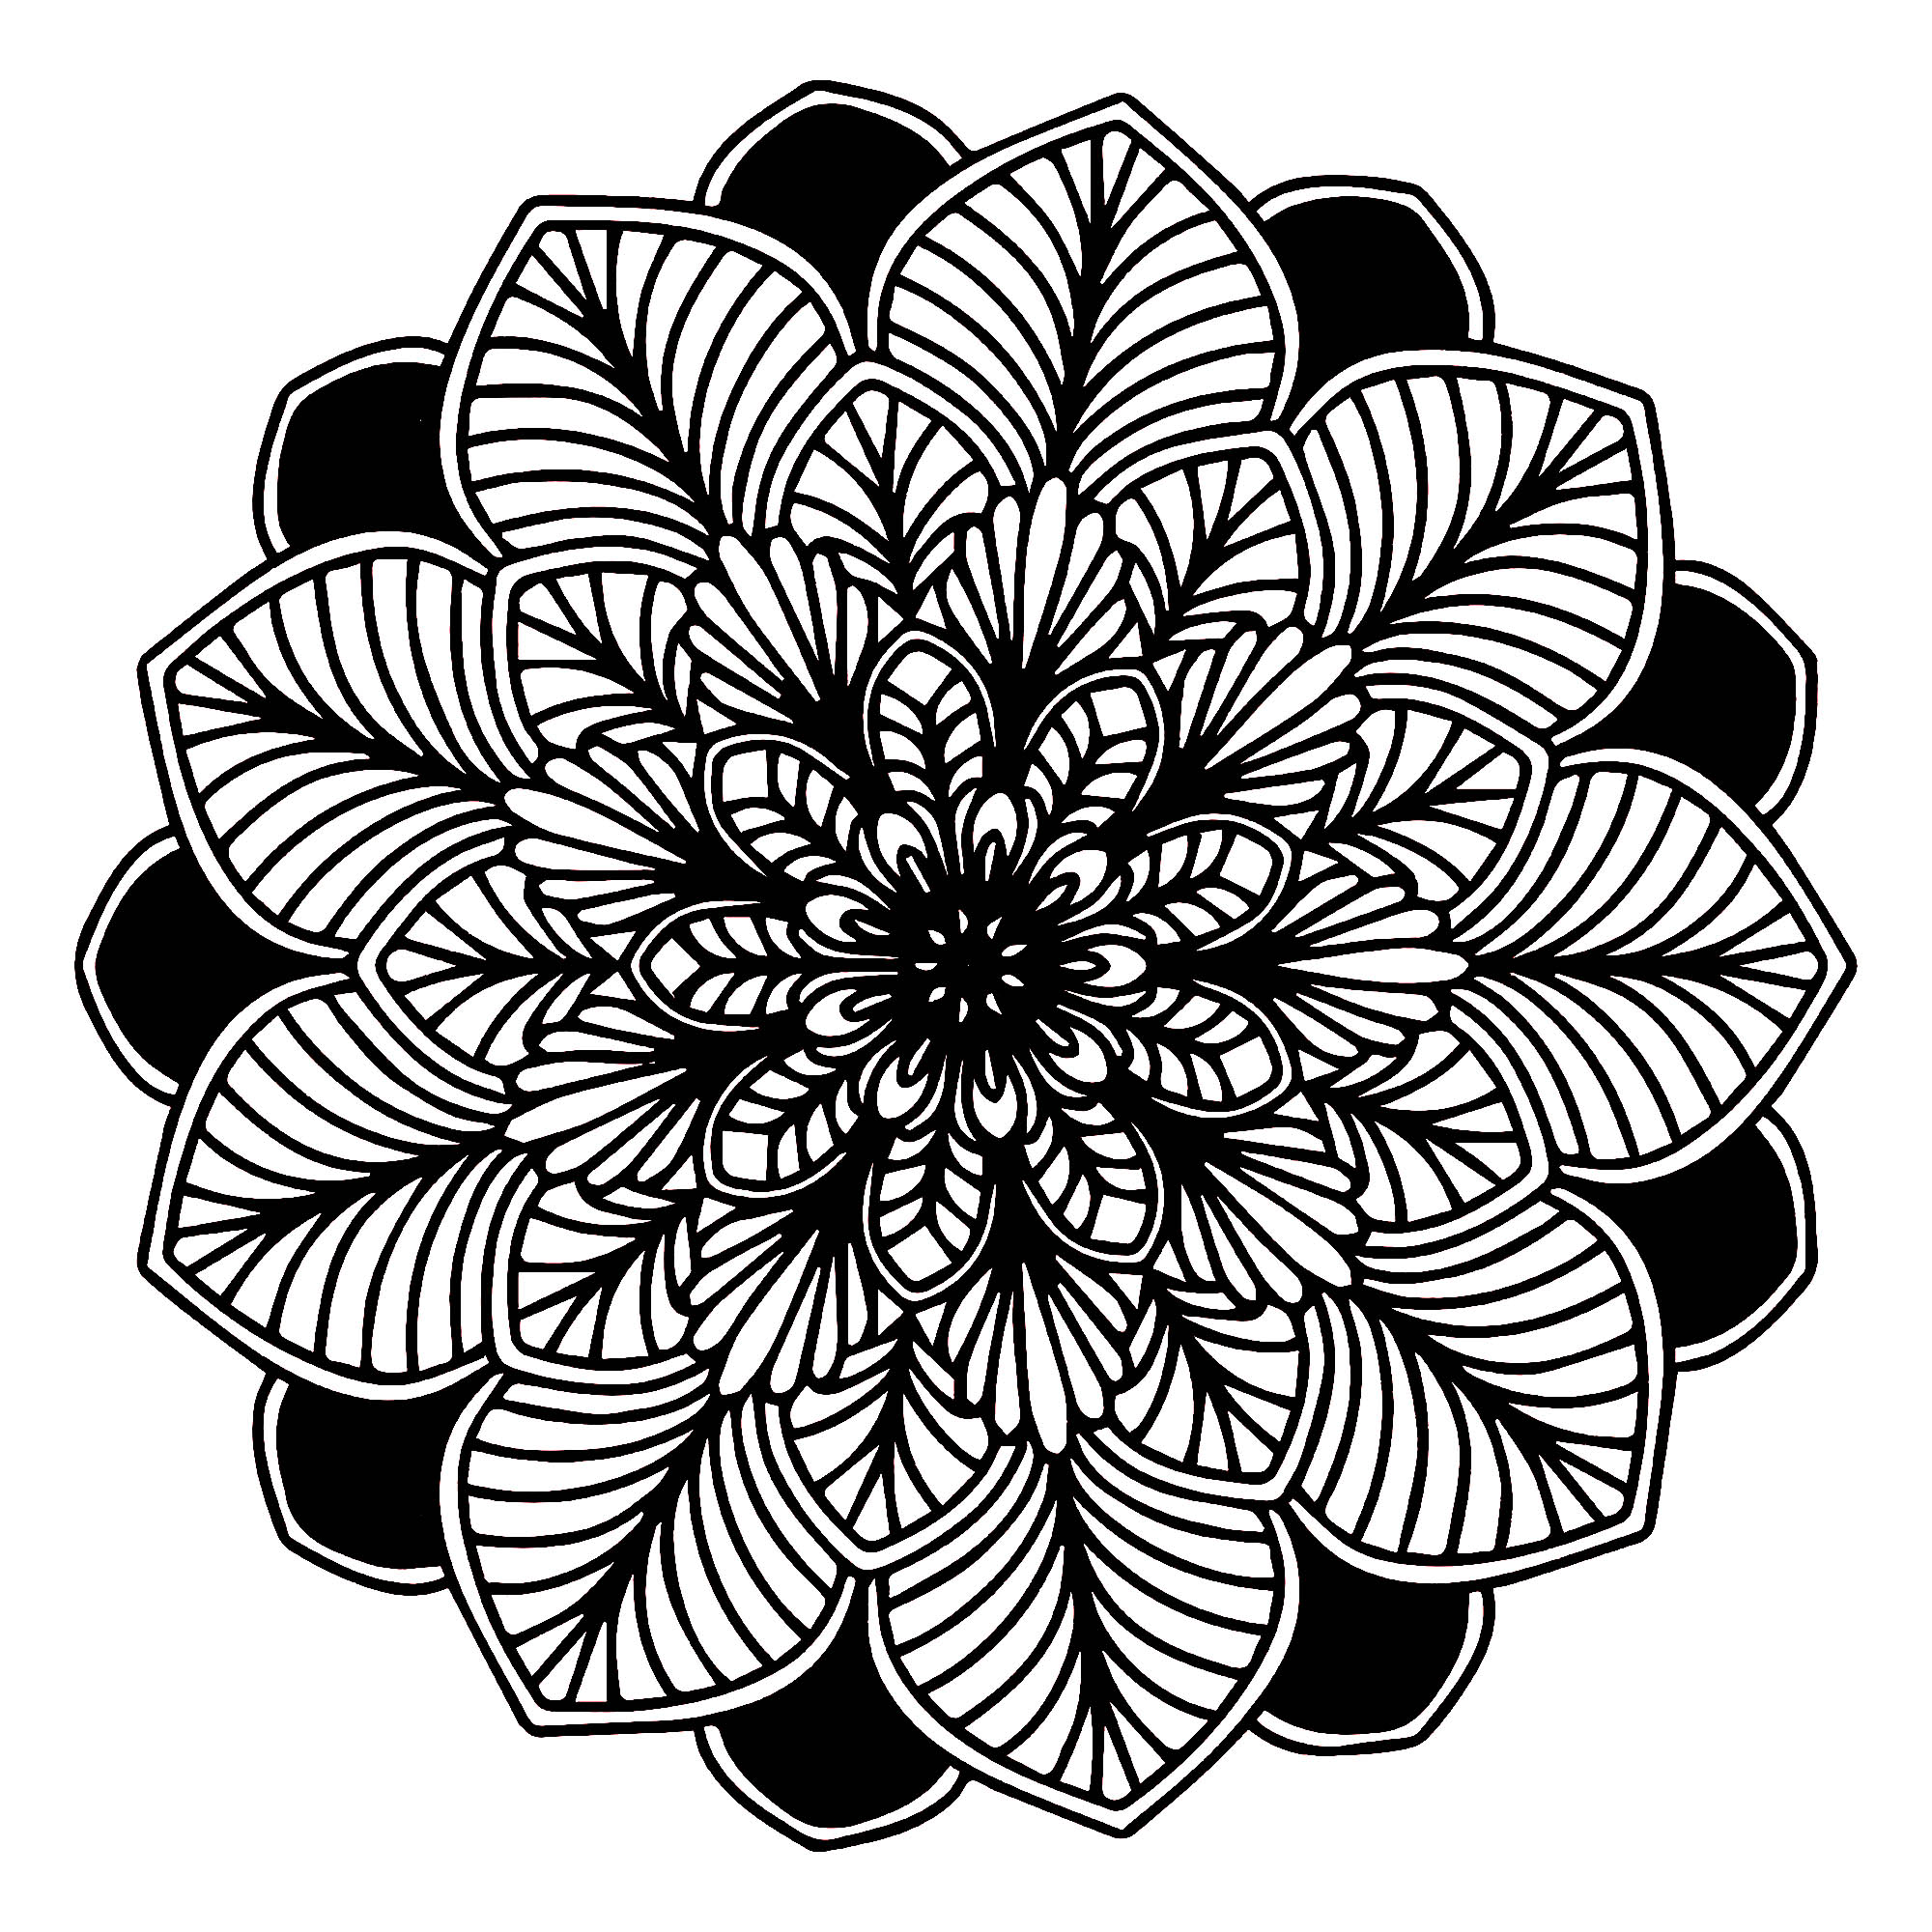 A luxuriant vegetation invades this magnificent Mandala with dark leaves. Give it life without delay. Do whatever it takes to get rid of any distractions that may interfere with your coloring.